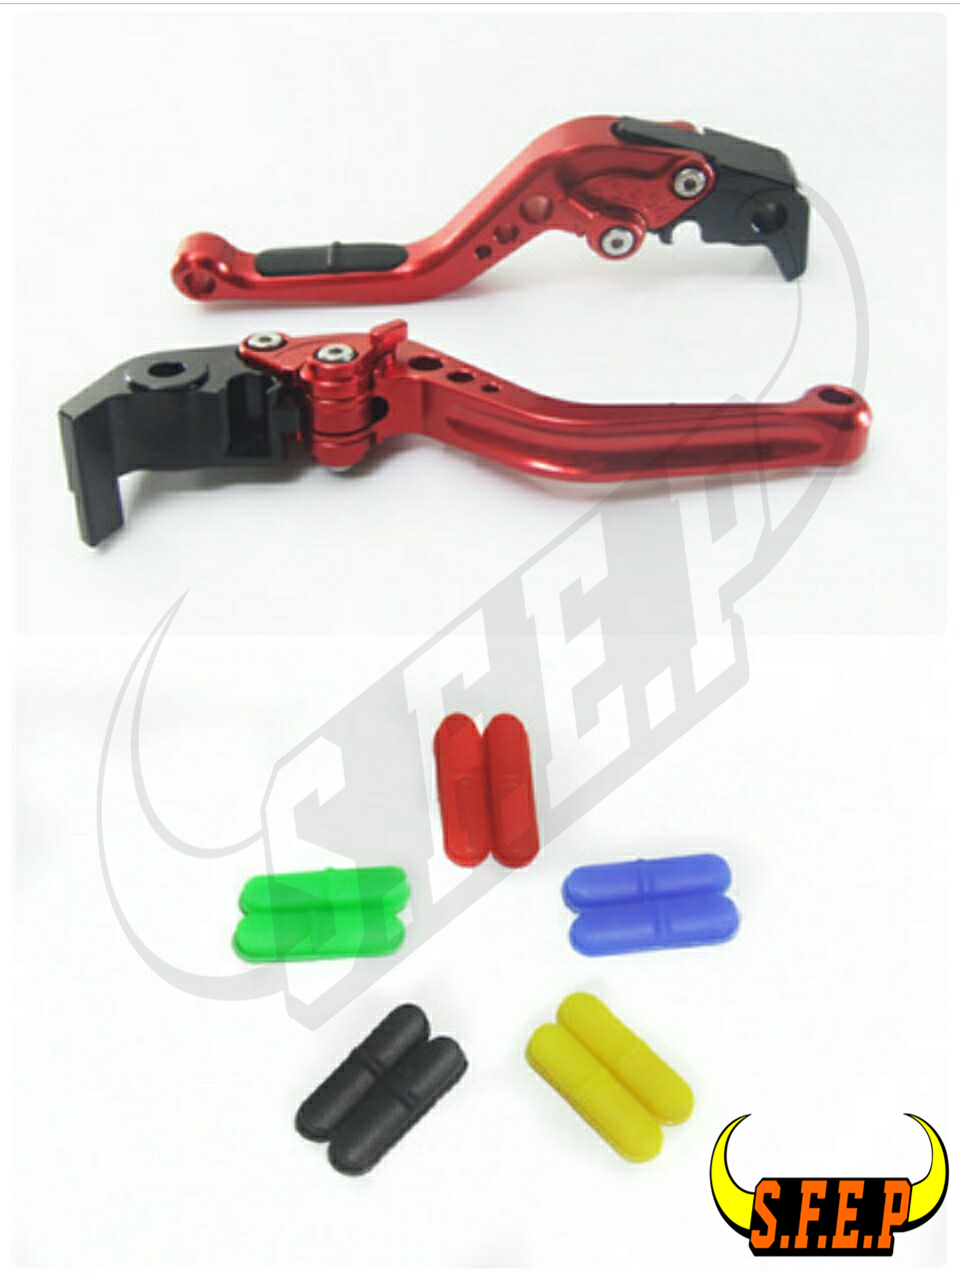 CNC Adjustable Motorcycle Brake and Clutch Levers with Anti-Slip For Ducati M900/M1000 2000-2005